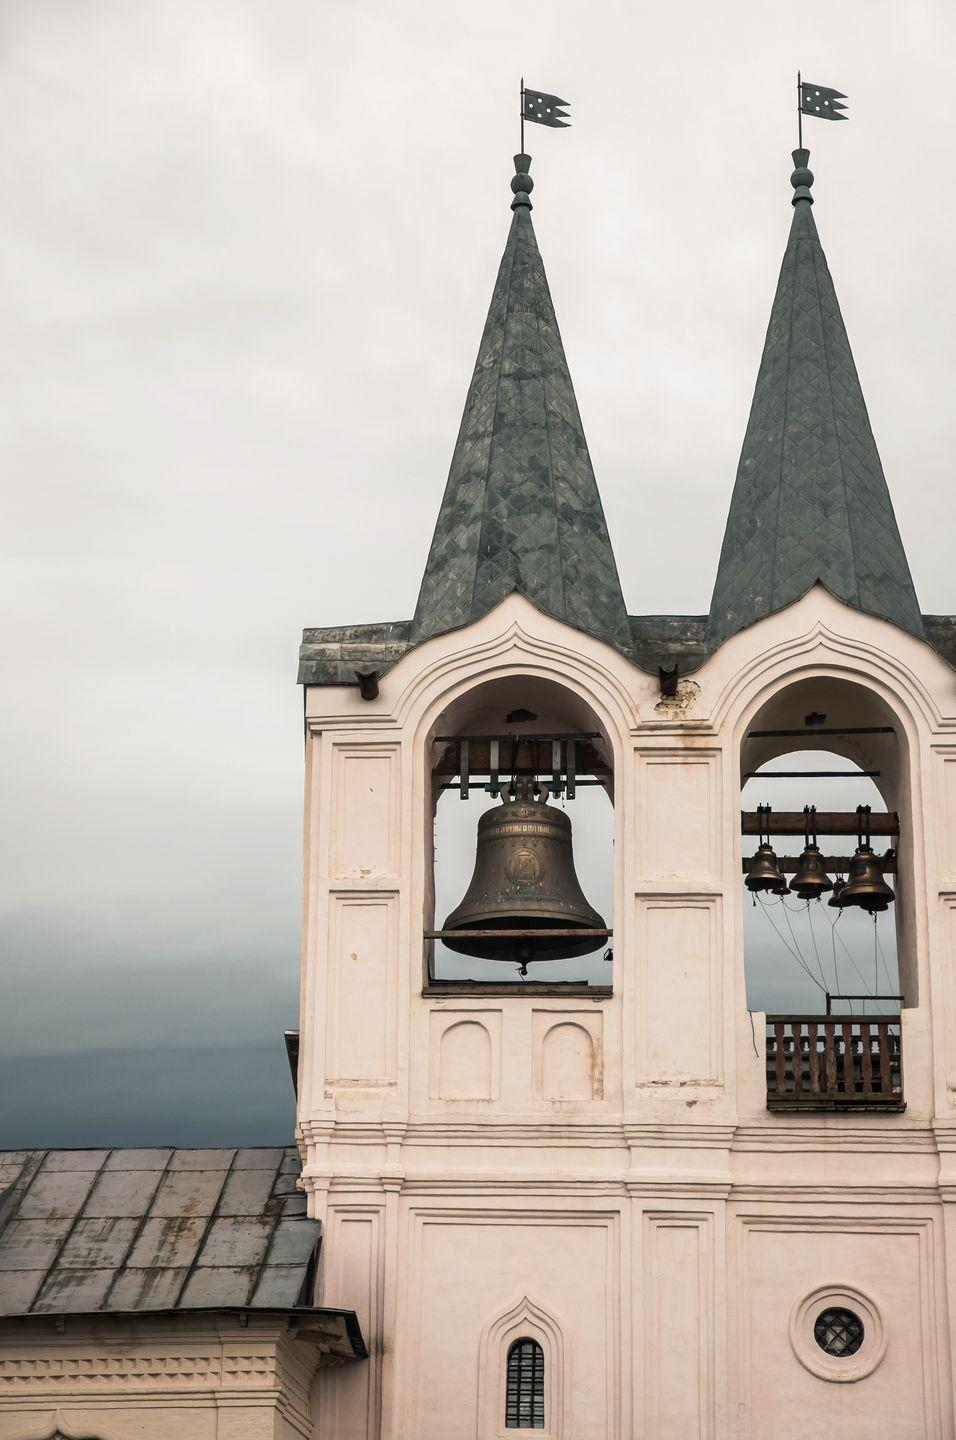 """<p>Churches across the world ring in the special day with <a href=""""https://www.nytimes.com/1933/04/15/archives/churches-filled-in-3hour-service-trinity-bell-tolls-33-times-as.html"""" rel=""""nofollow noopener"""" target=""""_blank"""" data-ylk=""""slk:33 bells tolls"""" class=""""link rapid-noclick-resp"""">33 bells tolls</a> in remembrance of Christ's years on Earth and to also commemorate his death.</p>"""